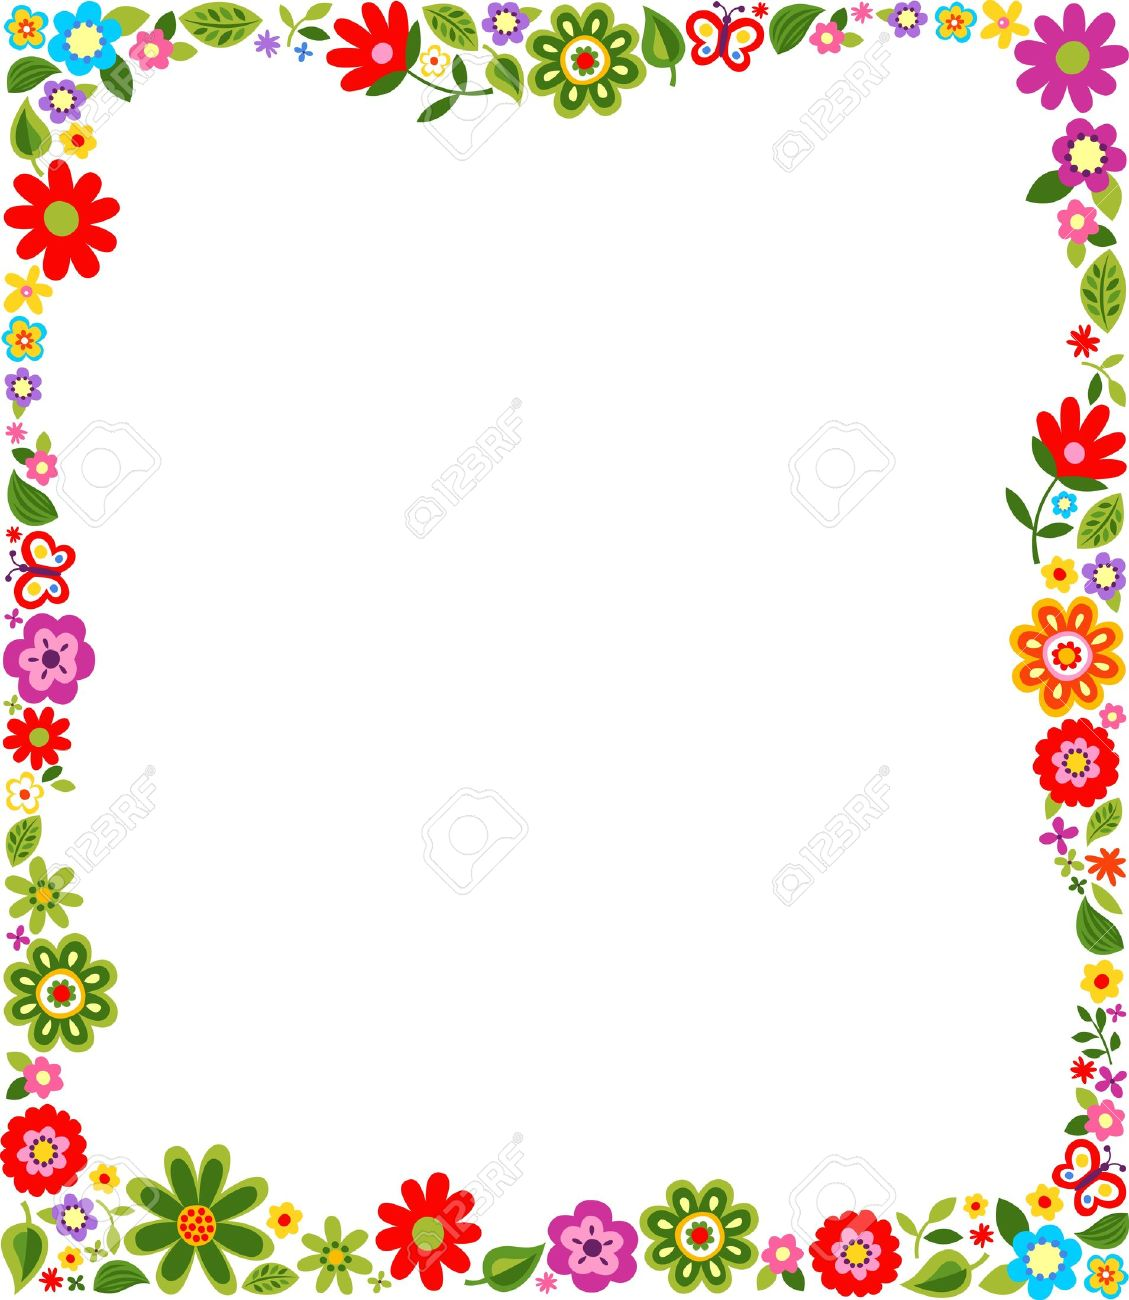 Cute Floral Border Pattern Royalty Free Cliparts Vectors And